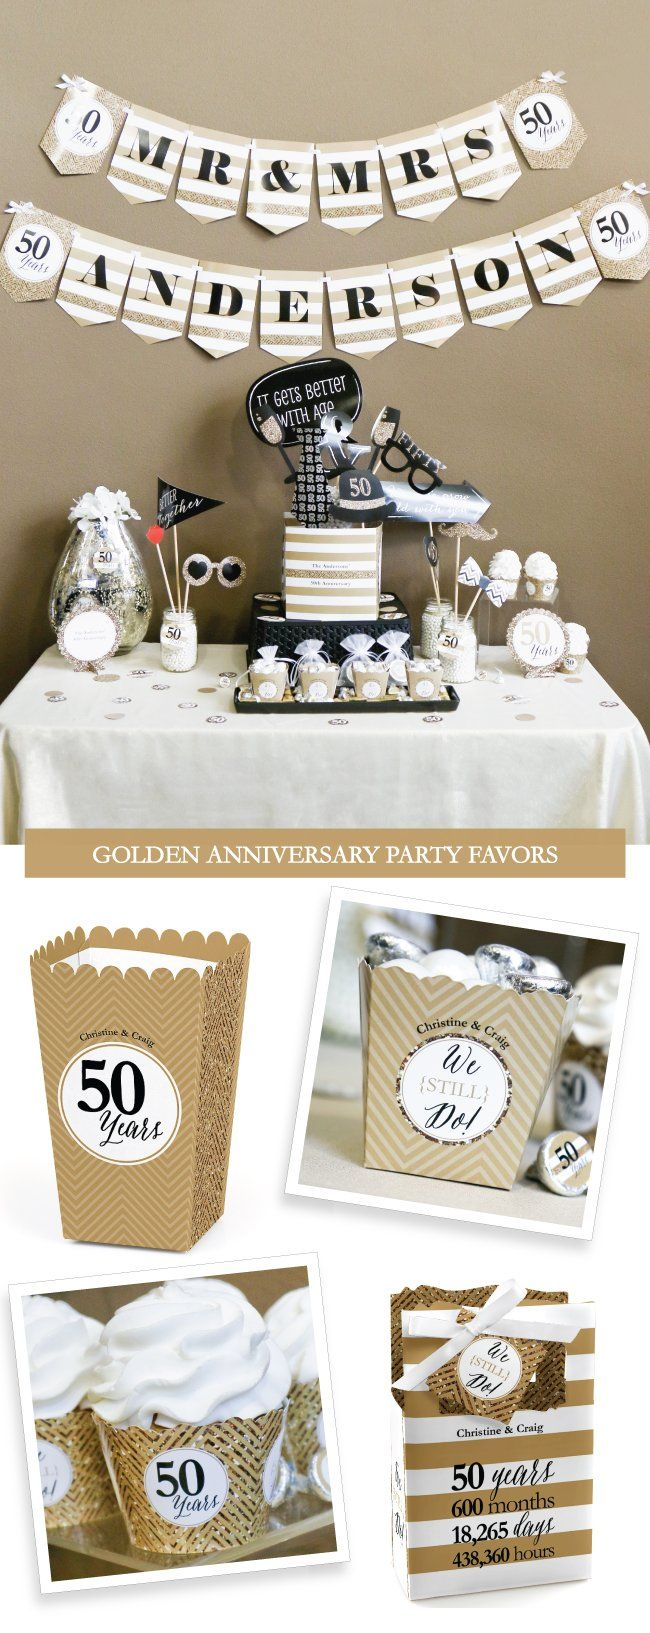 86 best Anniversary Party Supplies & Ideas images on Pinterest ...